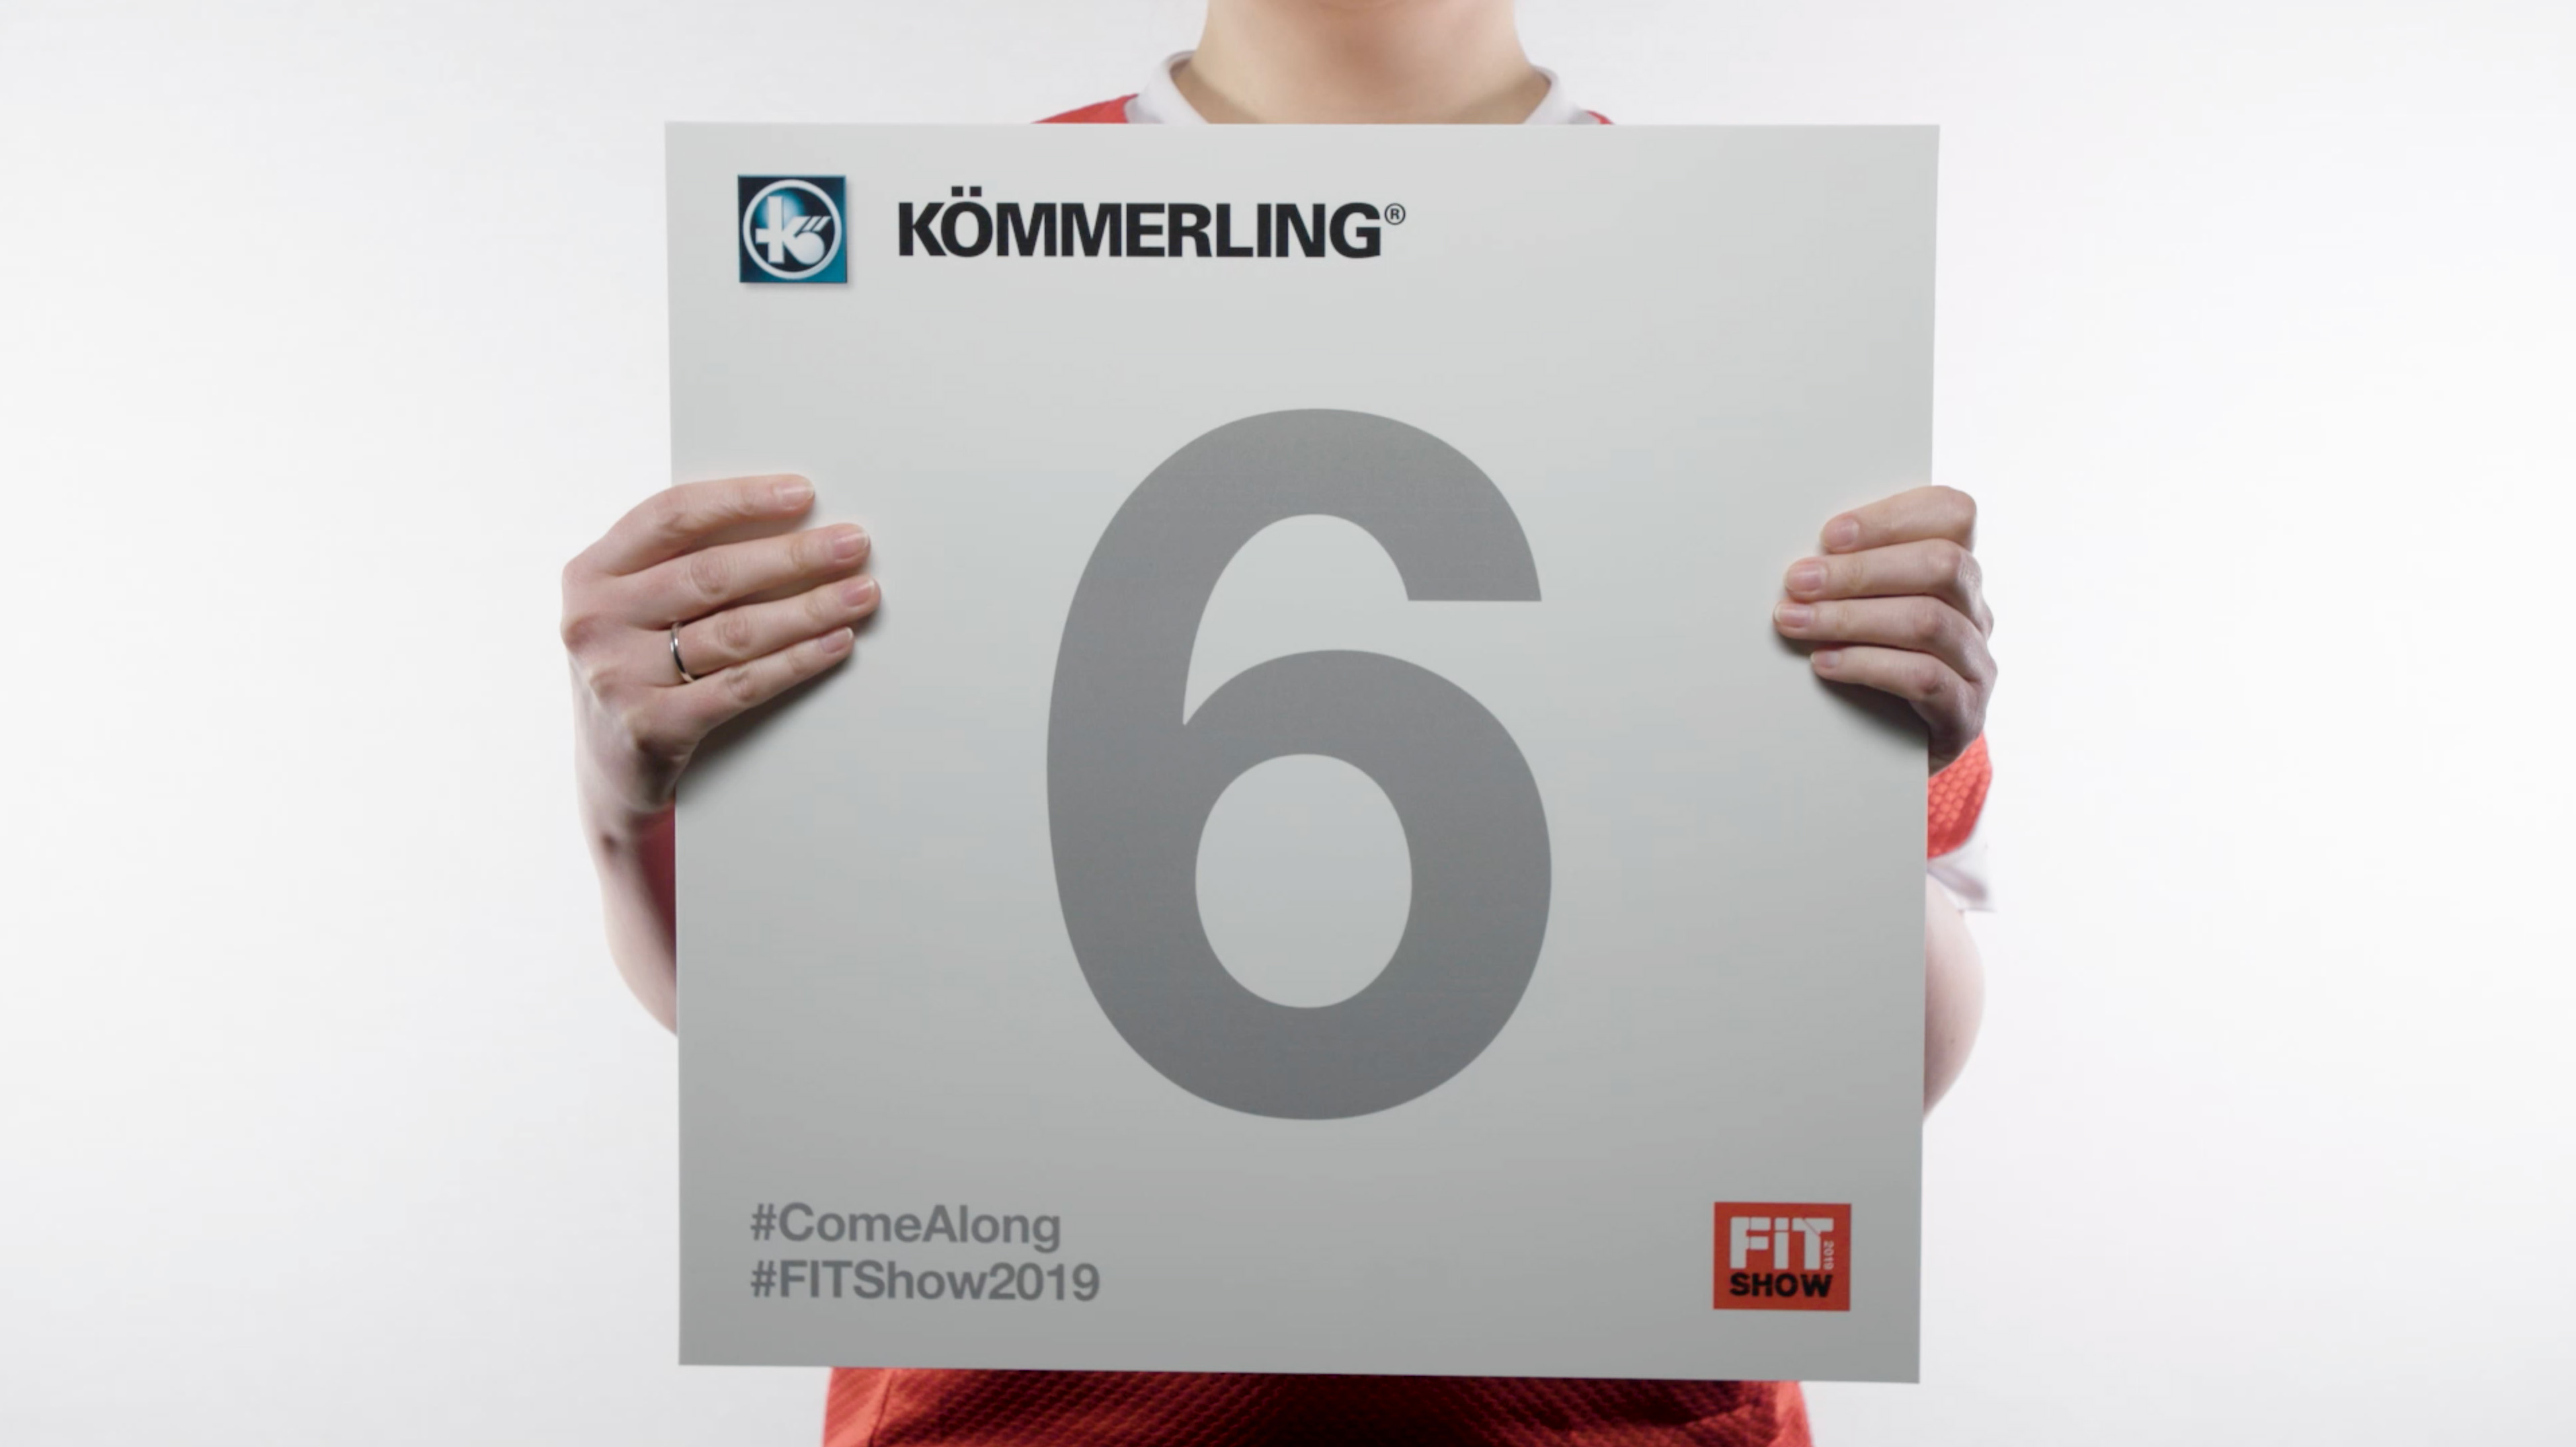 ComeAlong to KOMMERLING at the FIT Show